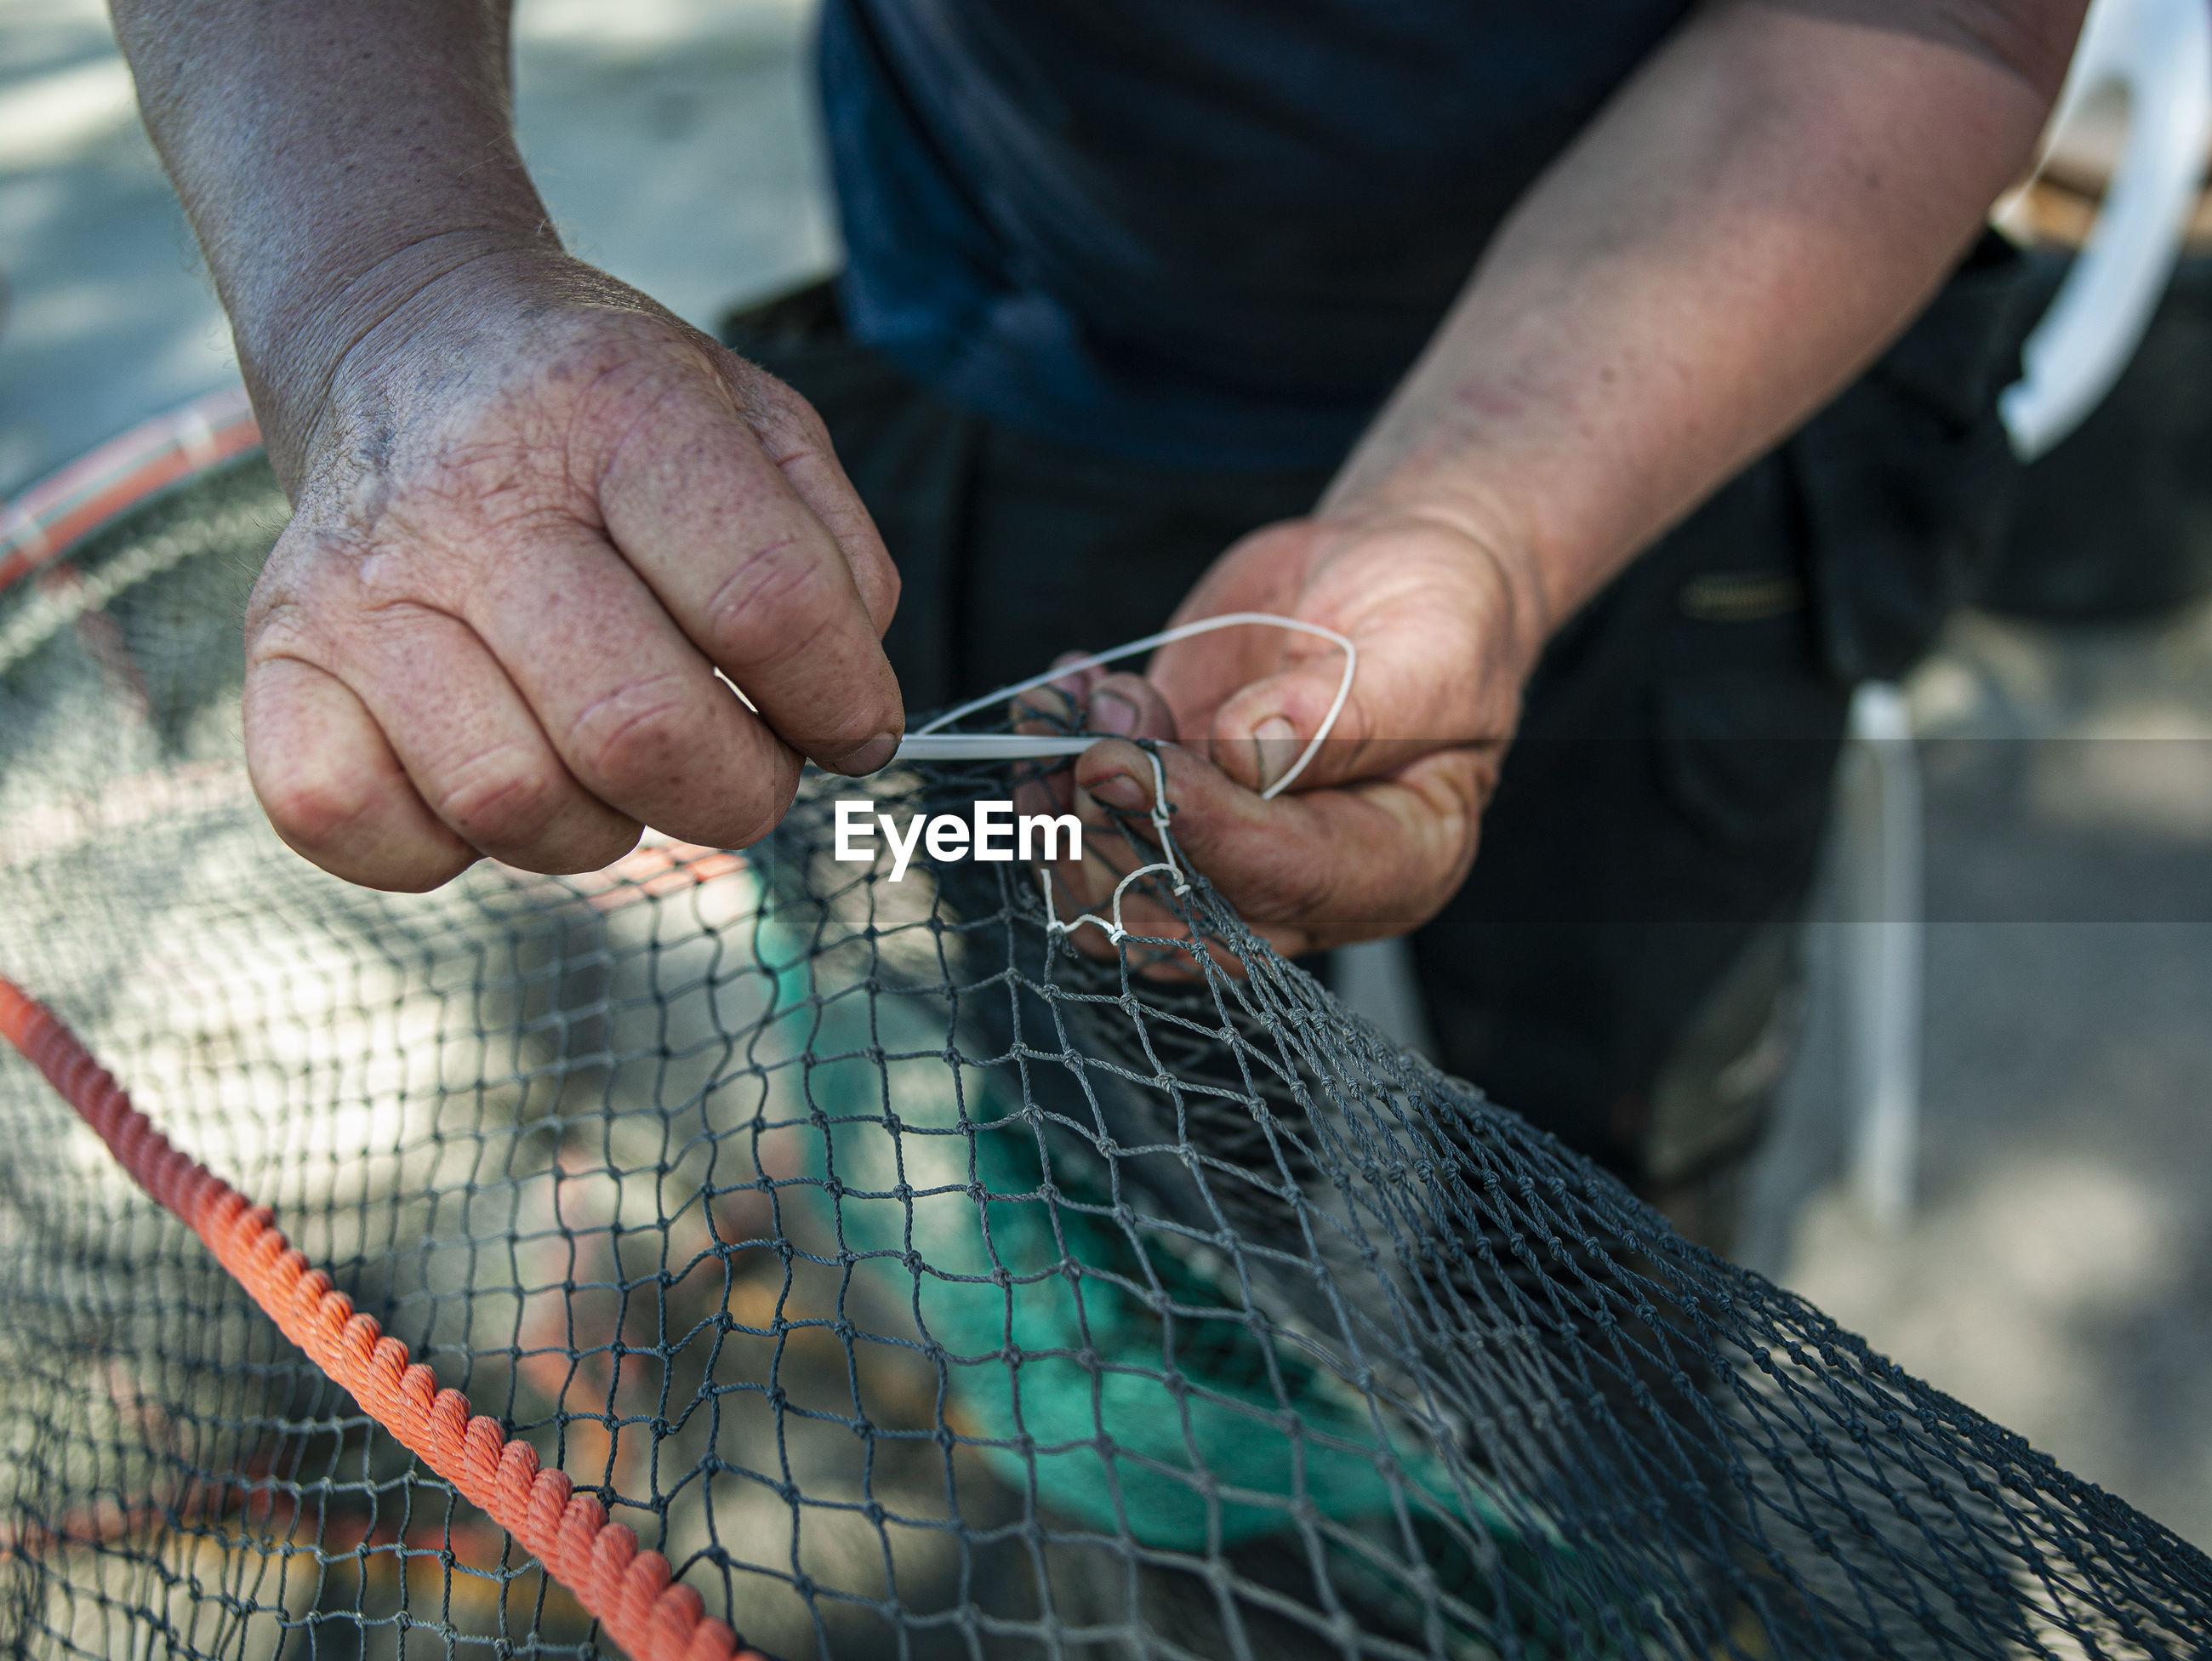 Midsection of man working with fishing net